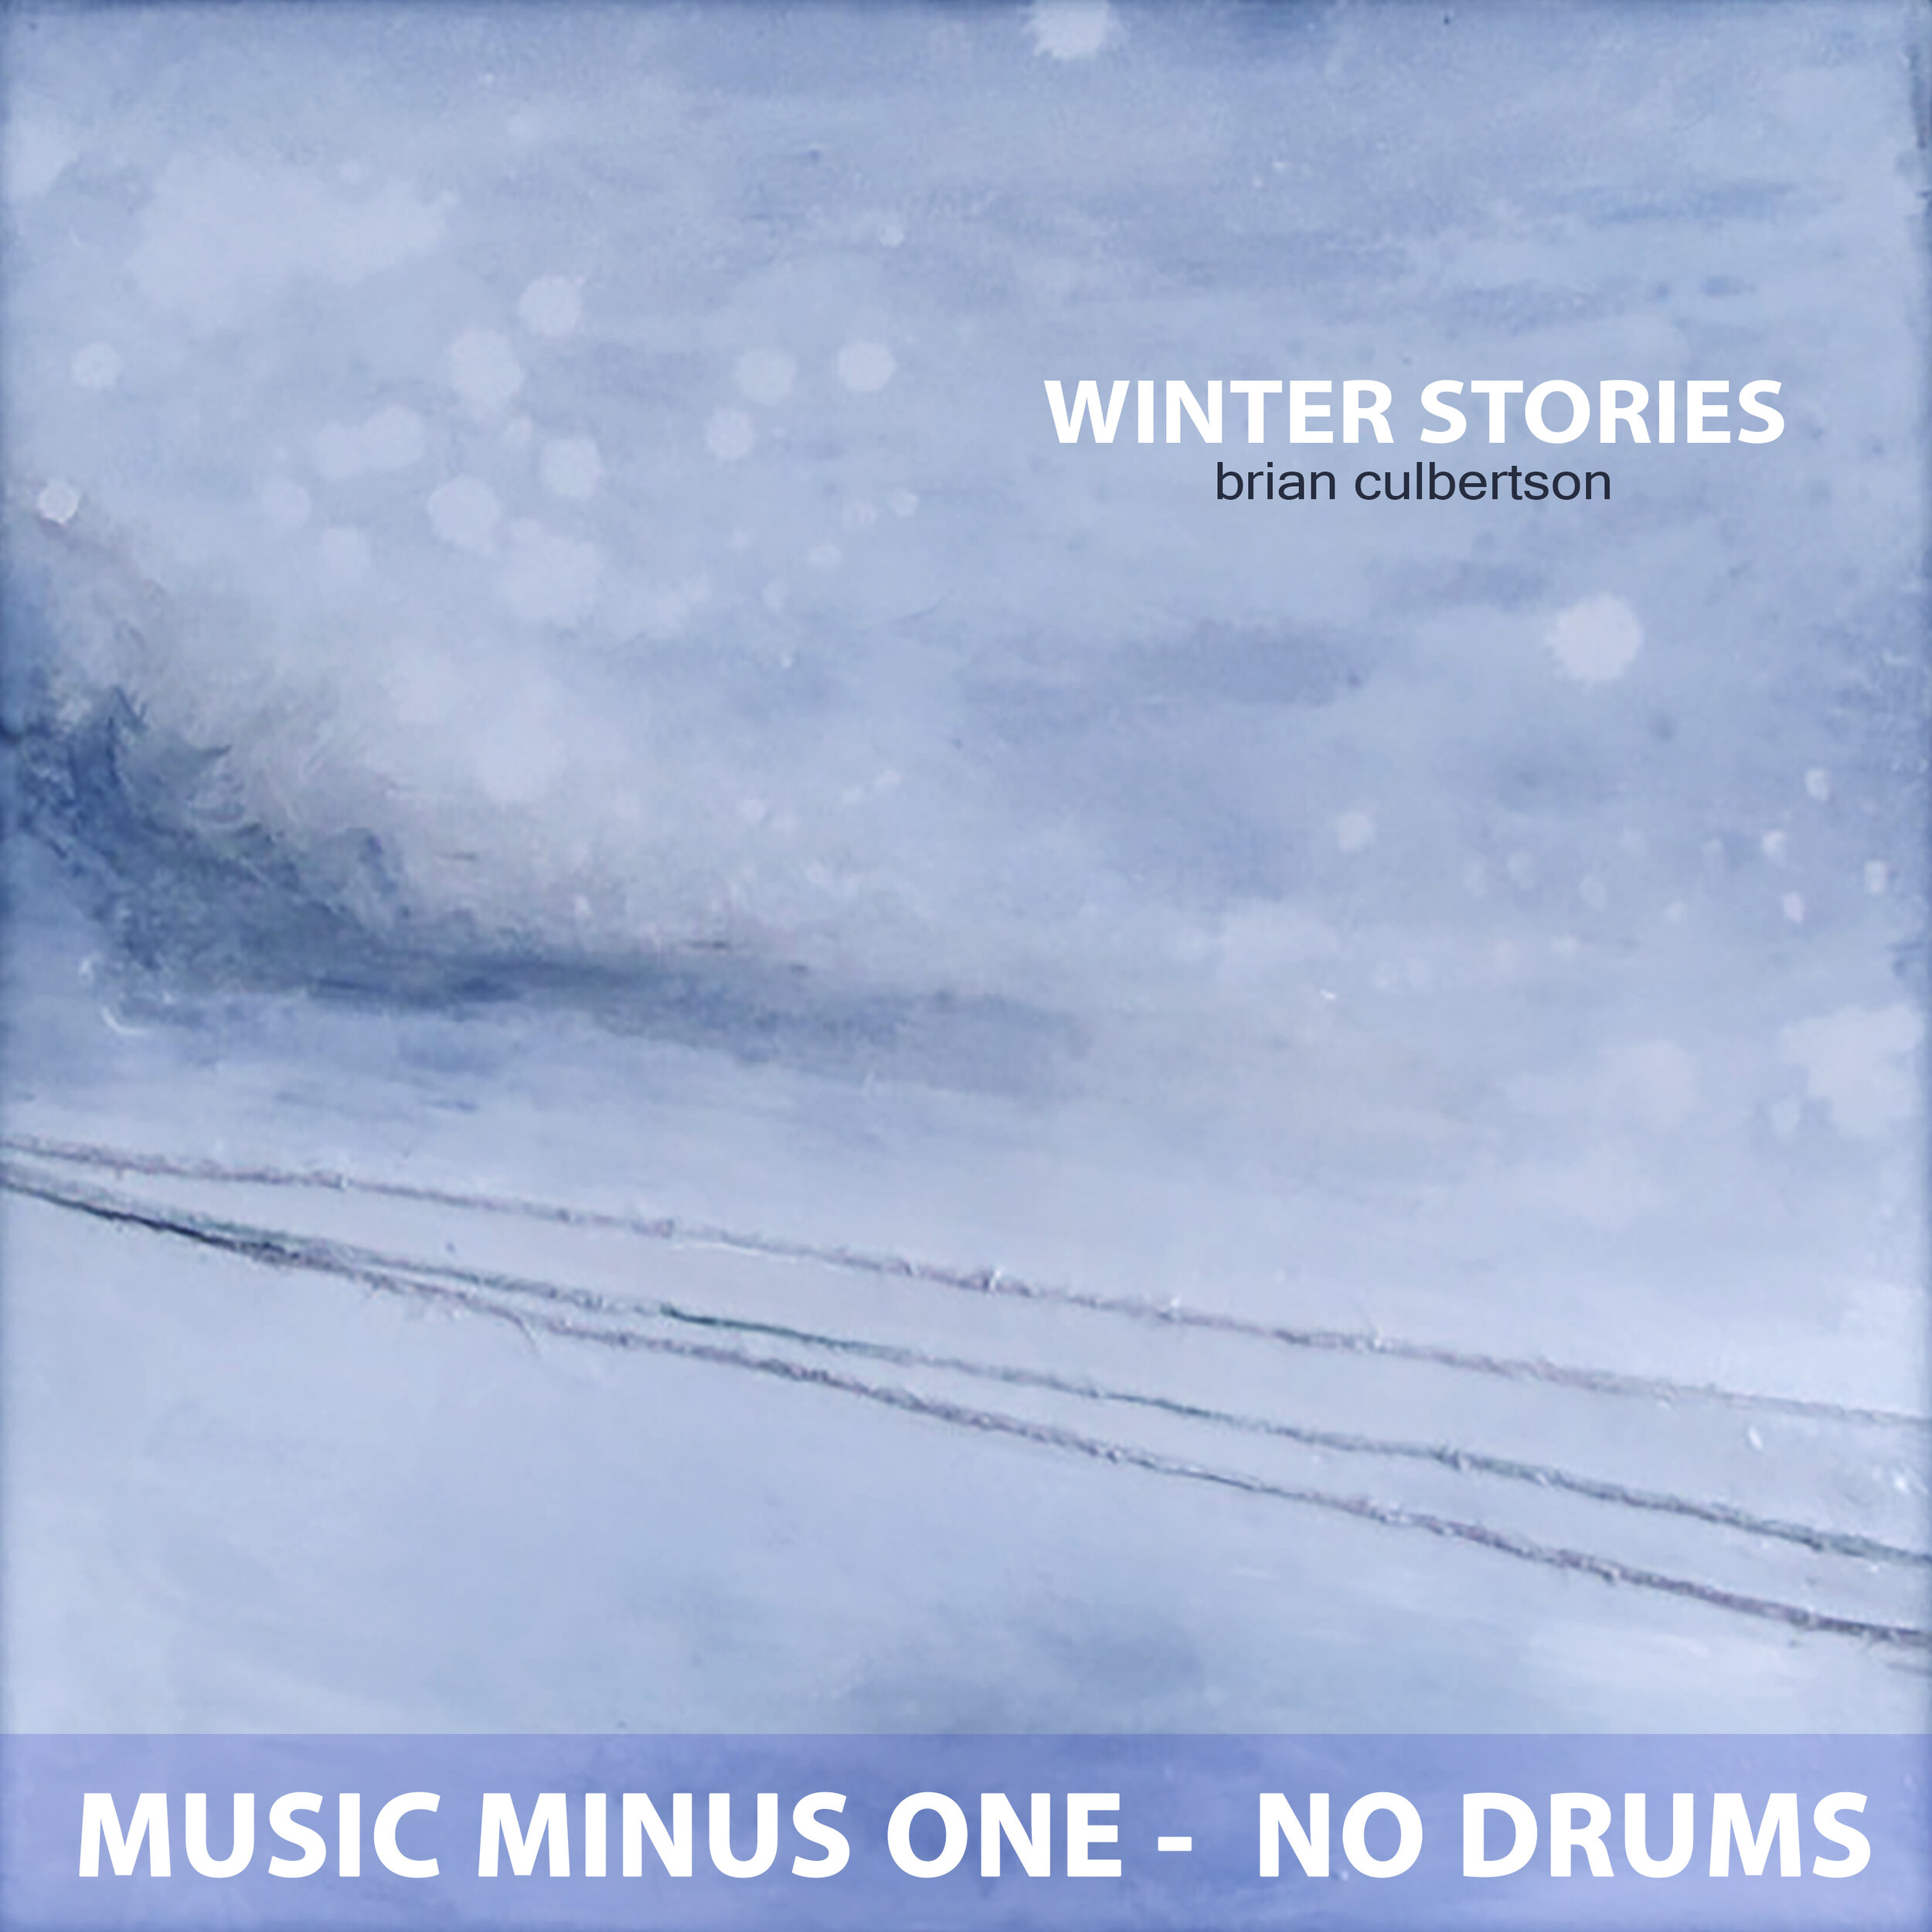 Winter Stories Cover NO DRUMS.jpg